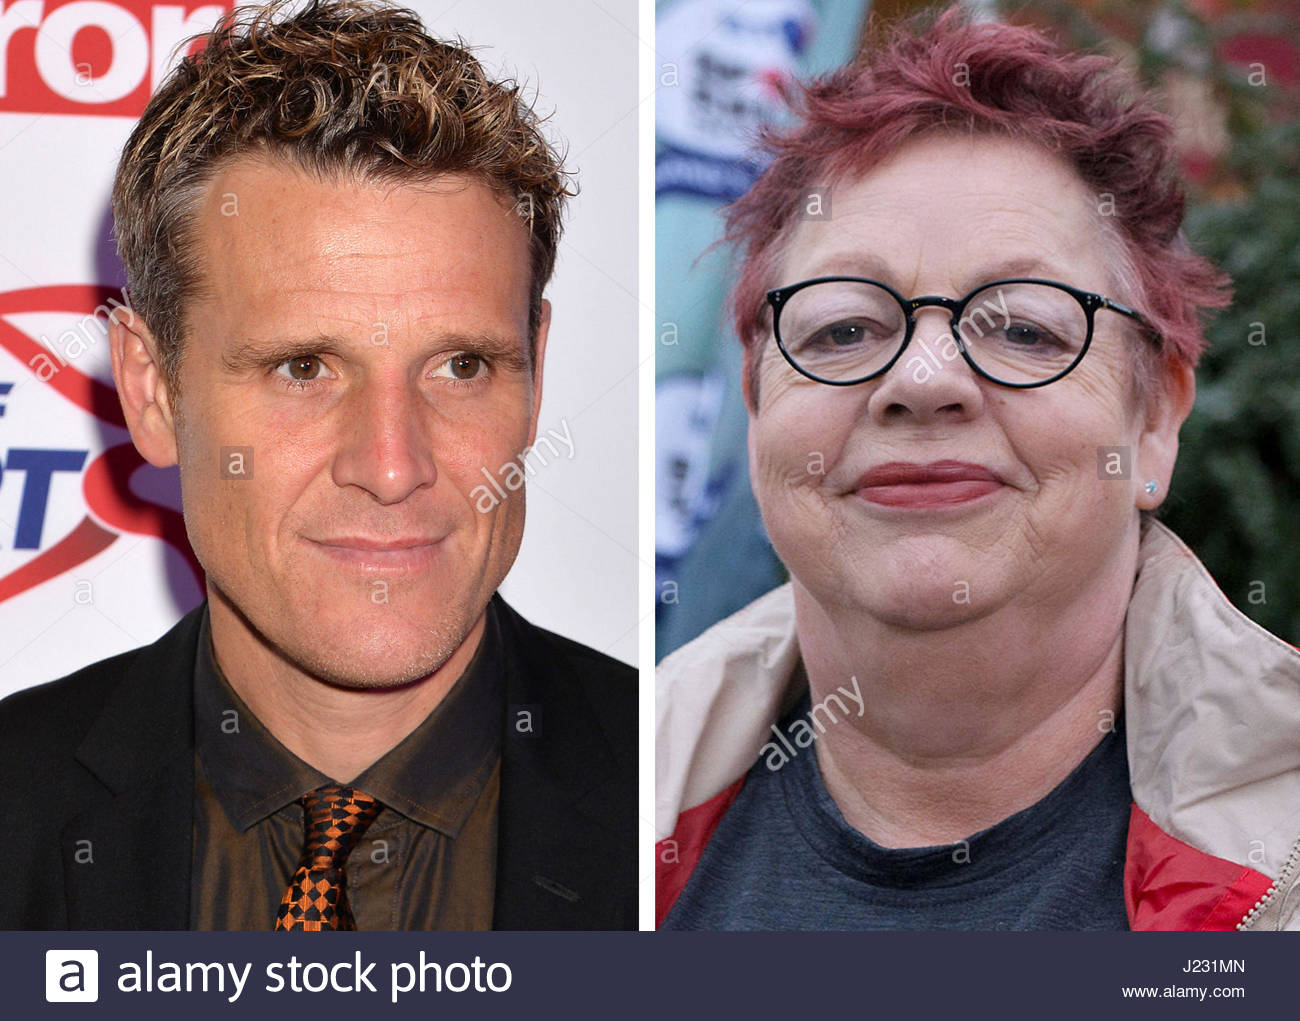 Undated file photos of James Cracknell and Jo Brand who are joining a host of famous names to unite in the fight - Stock Image